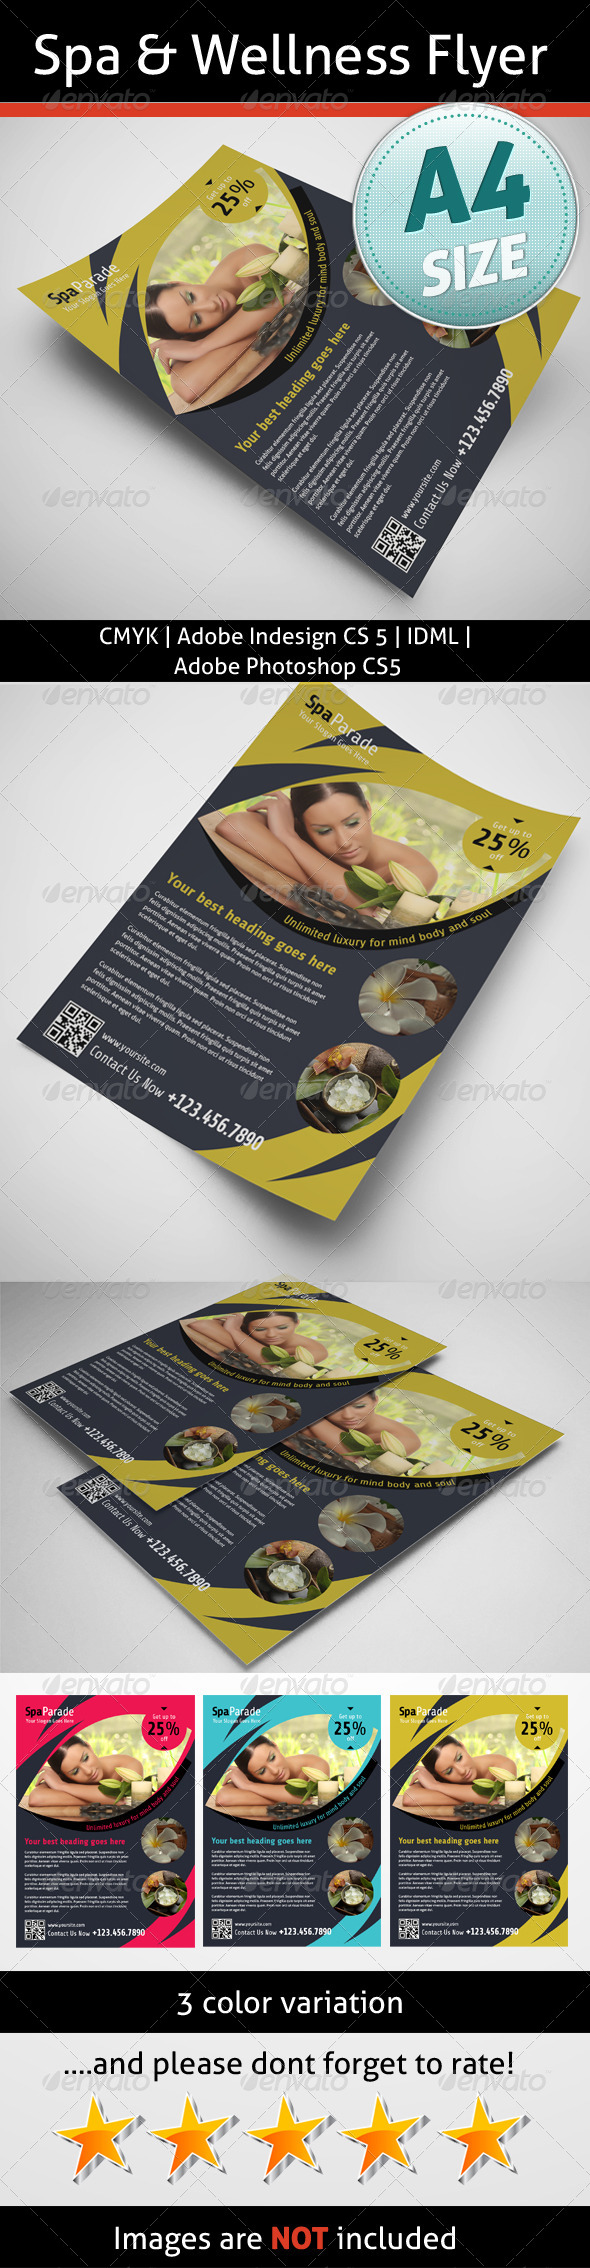 GraphicRiver Spa & Wellness Flyer 5320892